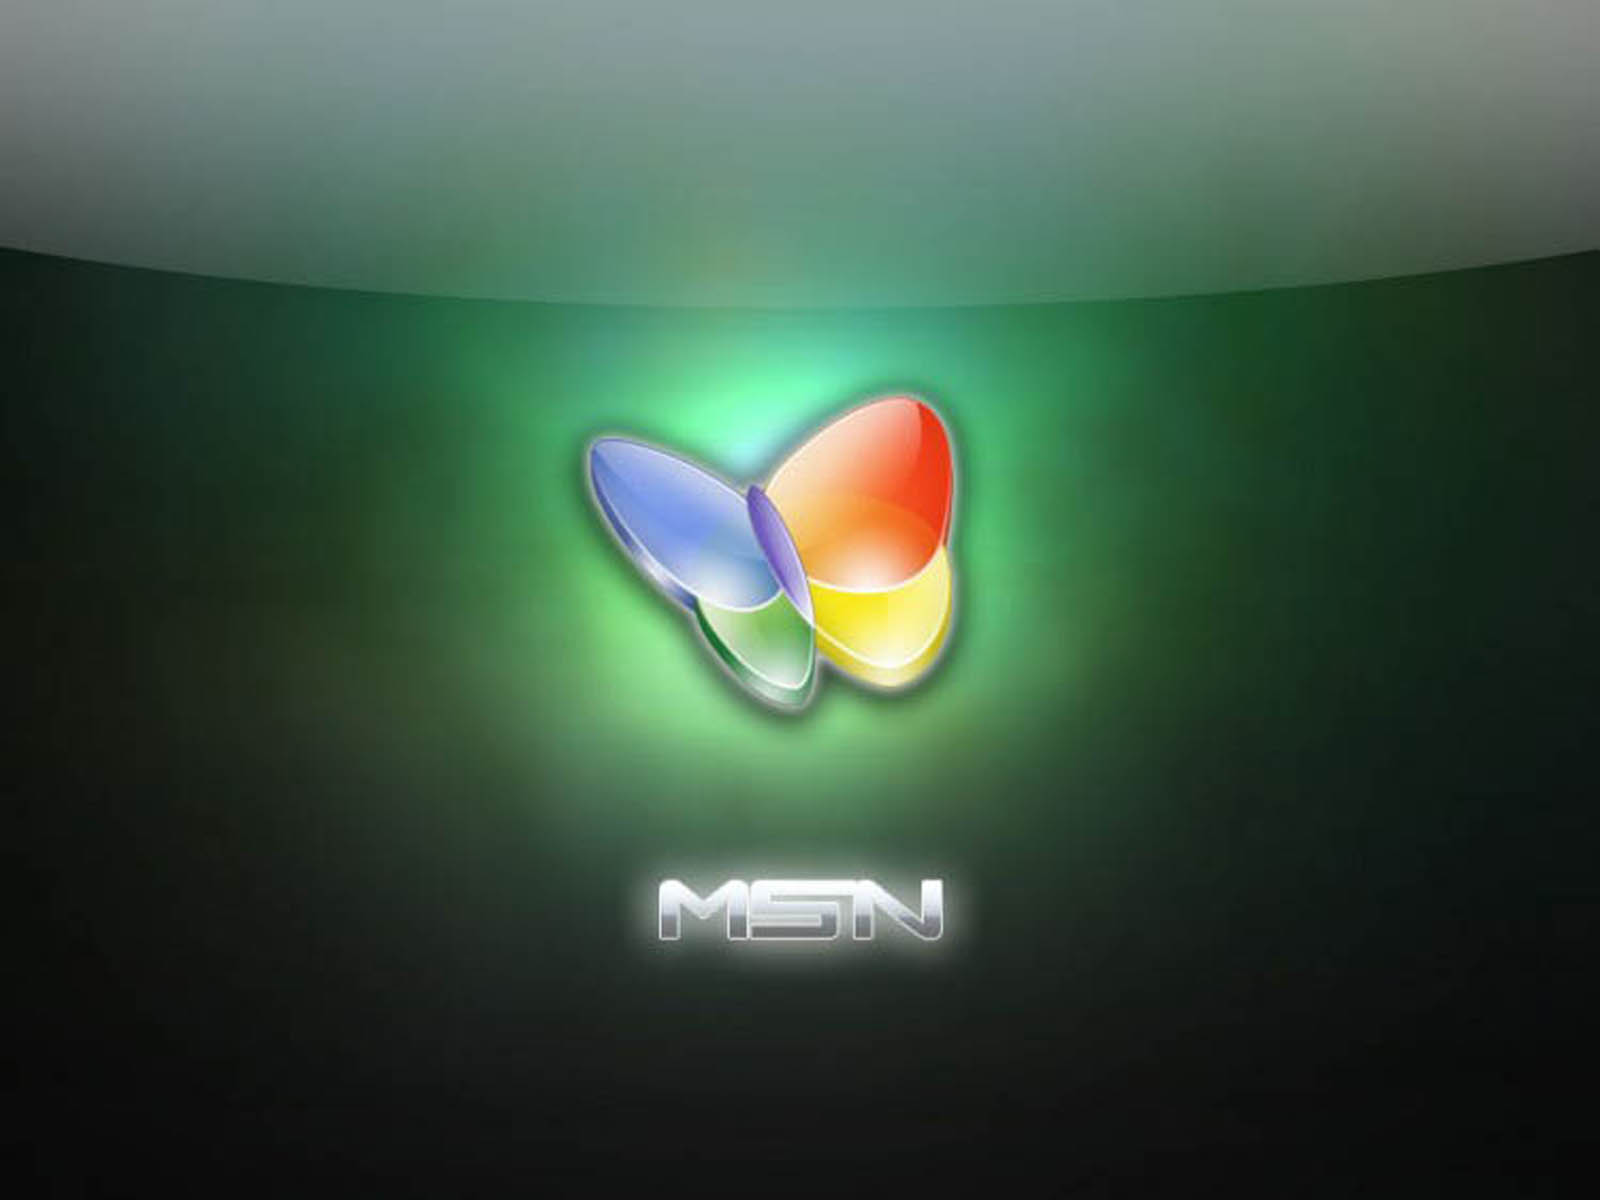 Wallpapers Msn Wallpapers